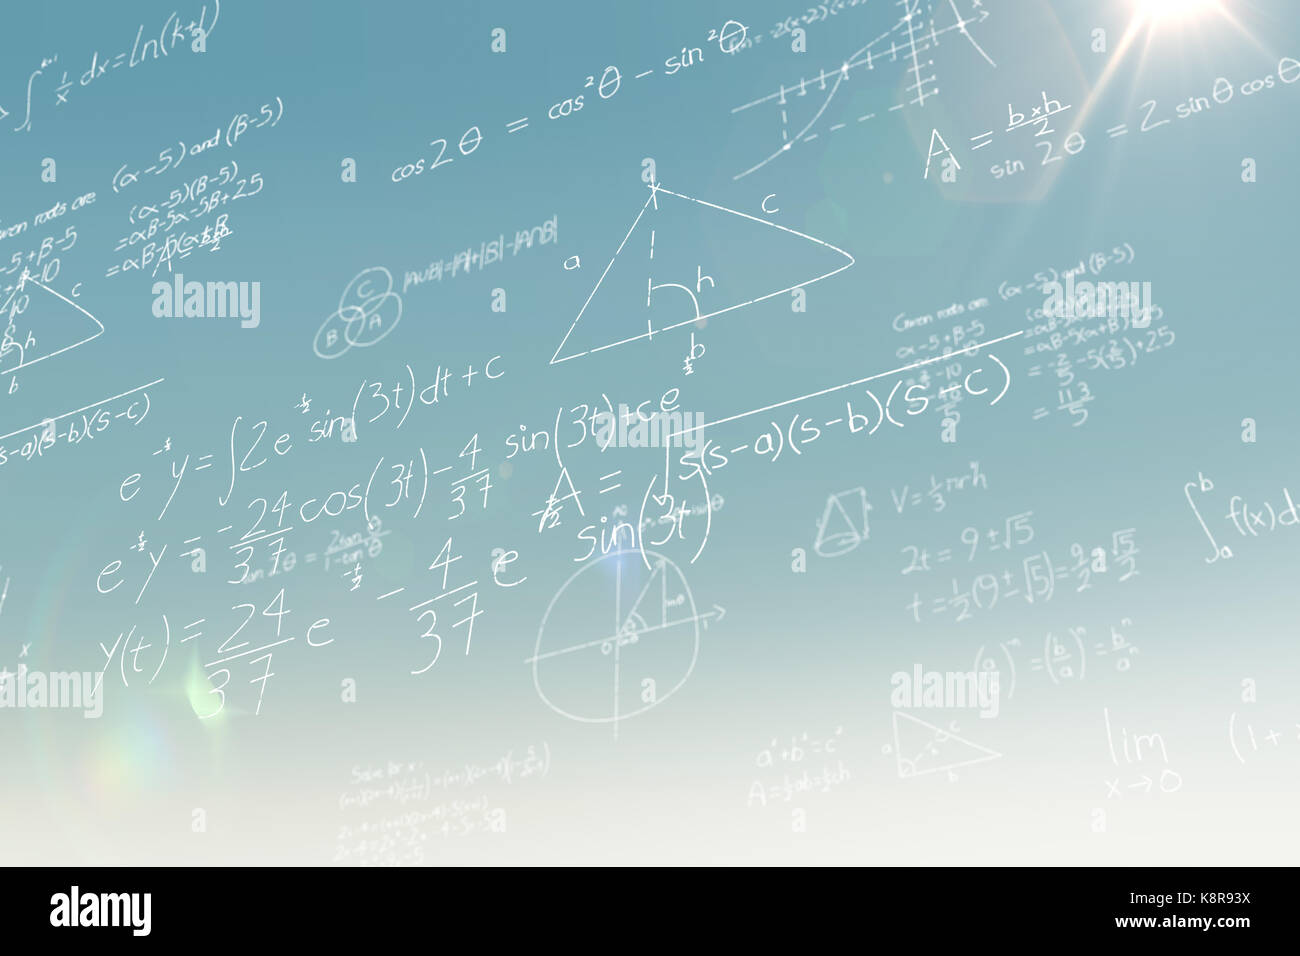 Blackboard Maths Equations Stock Photos & Blackboard Maths Equations ...